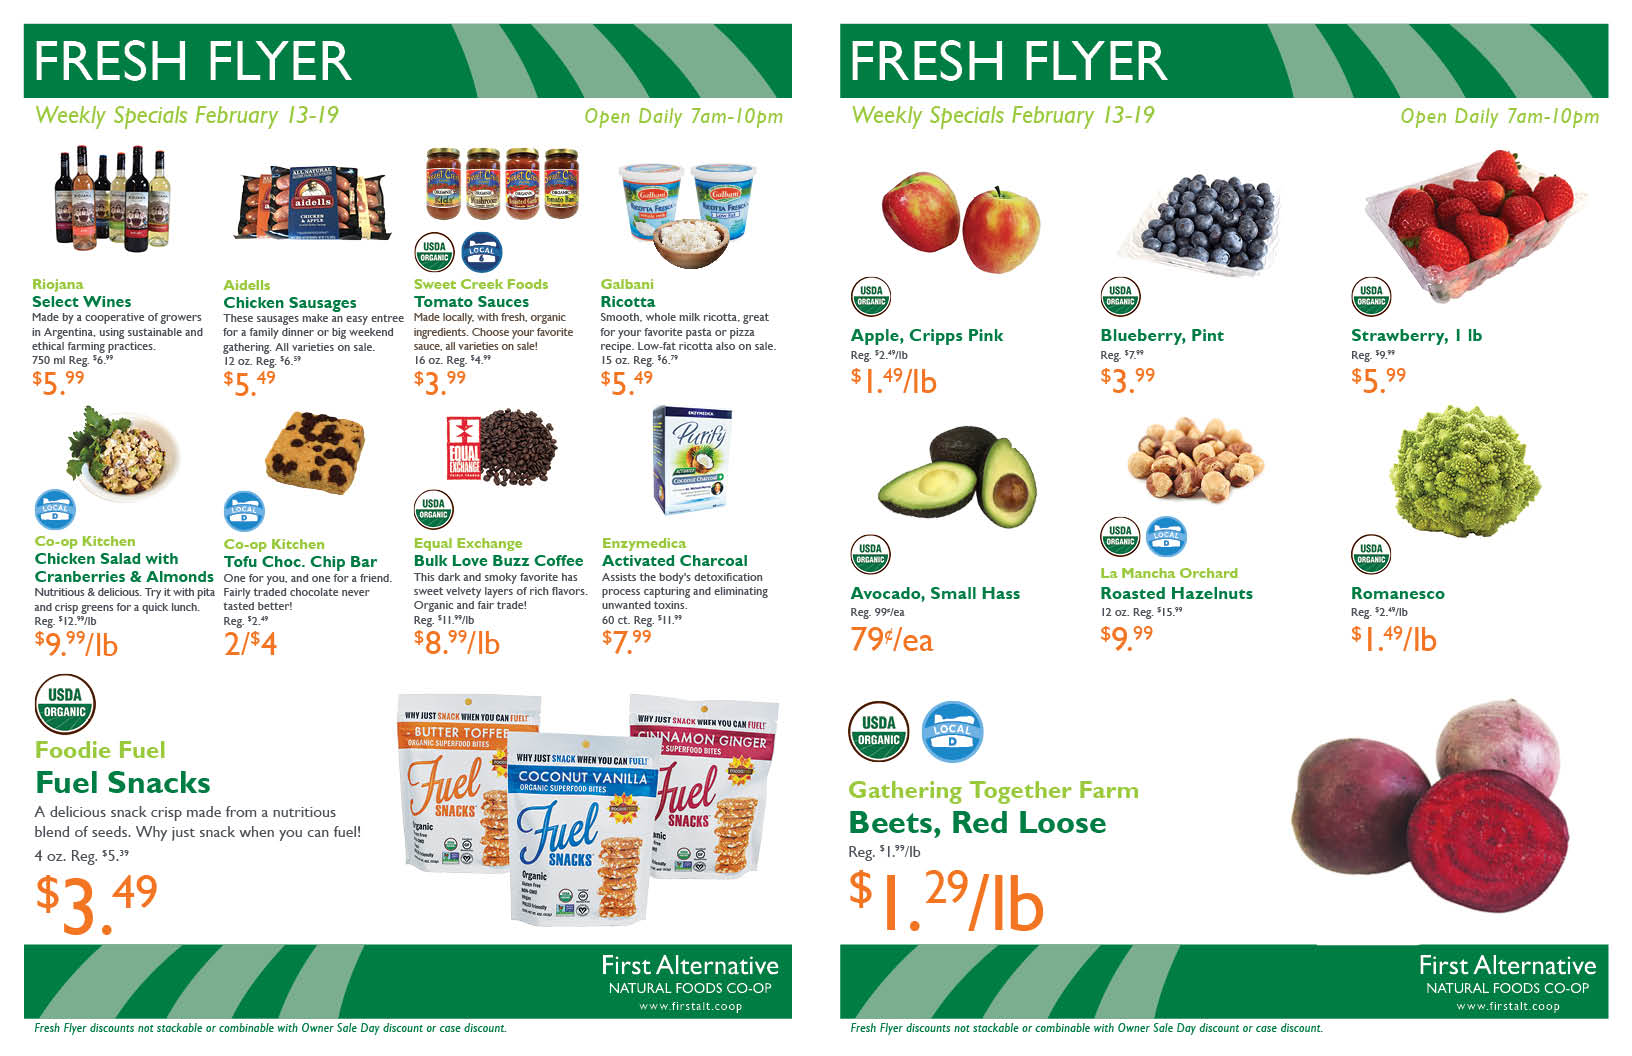 First Alternative Co-op Fresh Flyer February 13-19